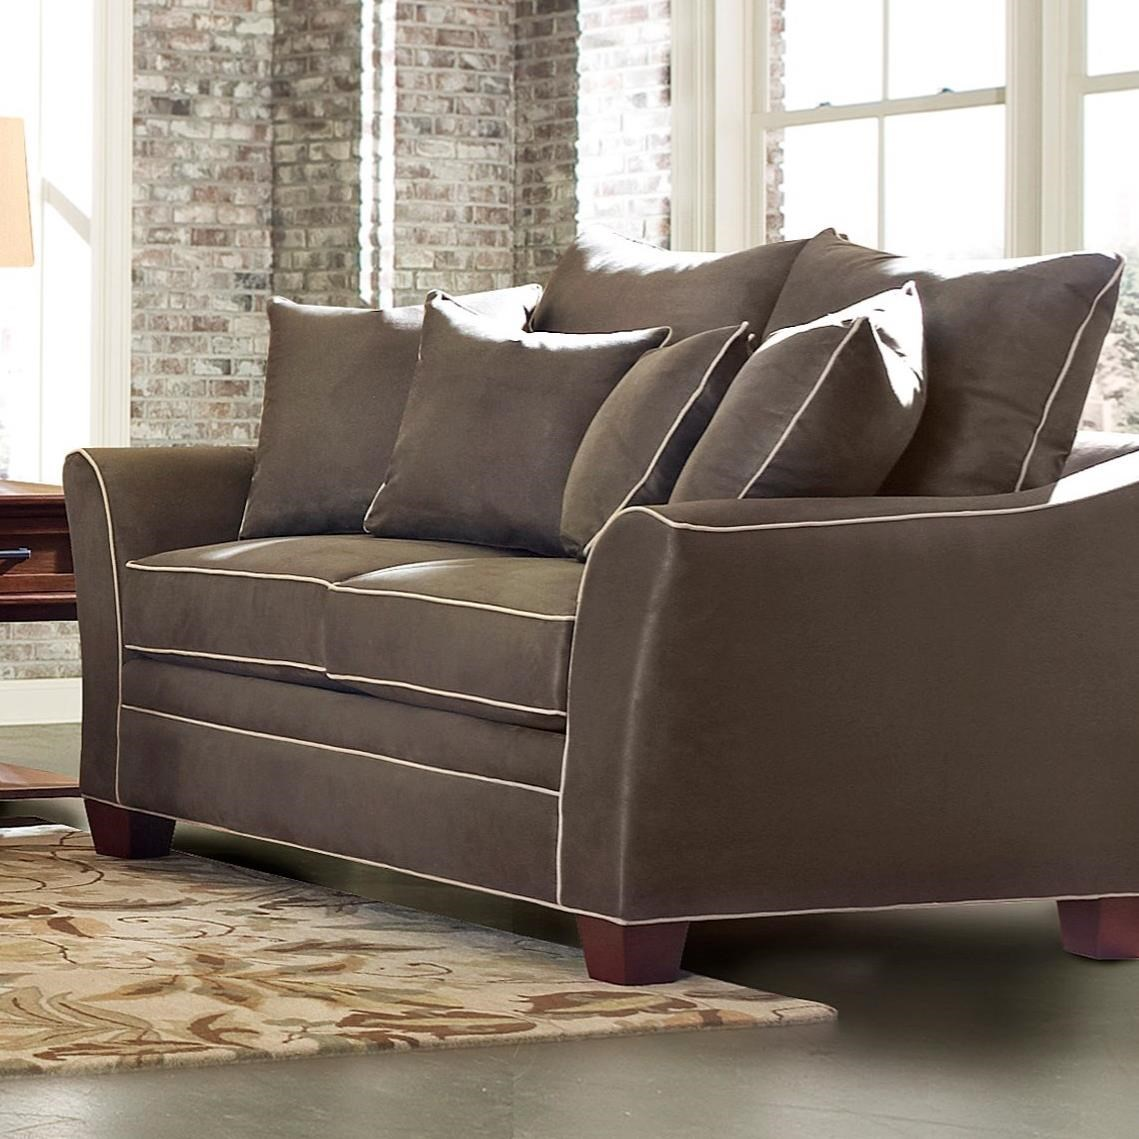 Posen Loveseat by Klaussner at Northeast Factory Direct